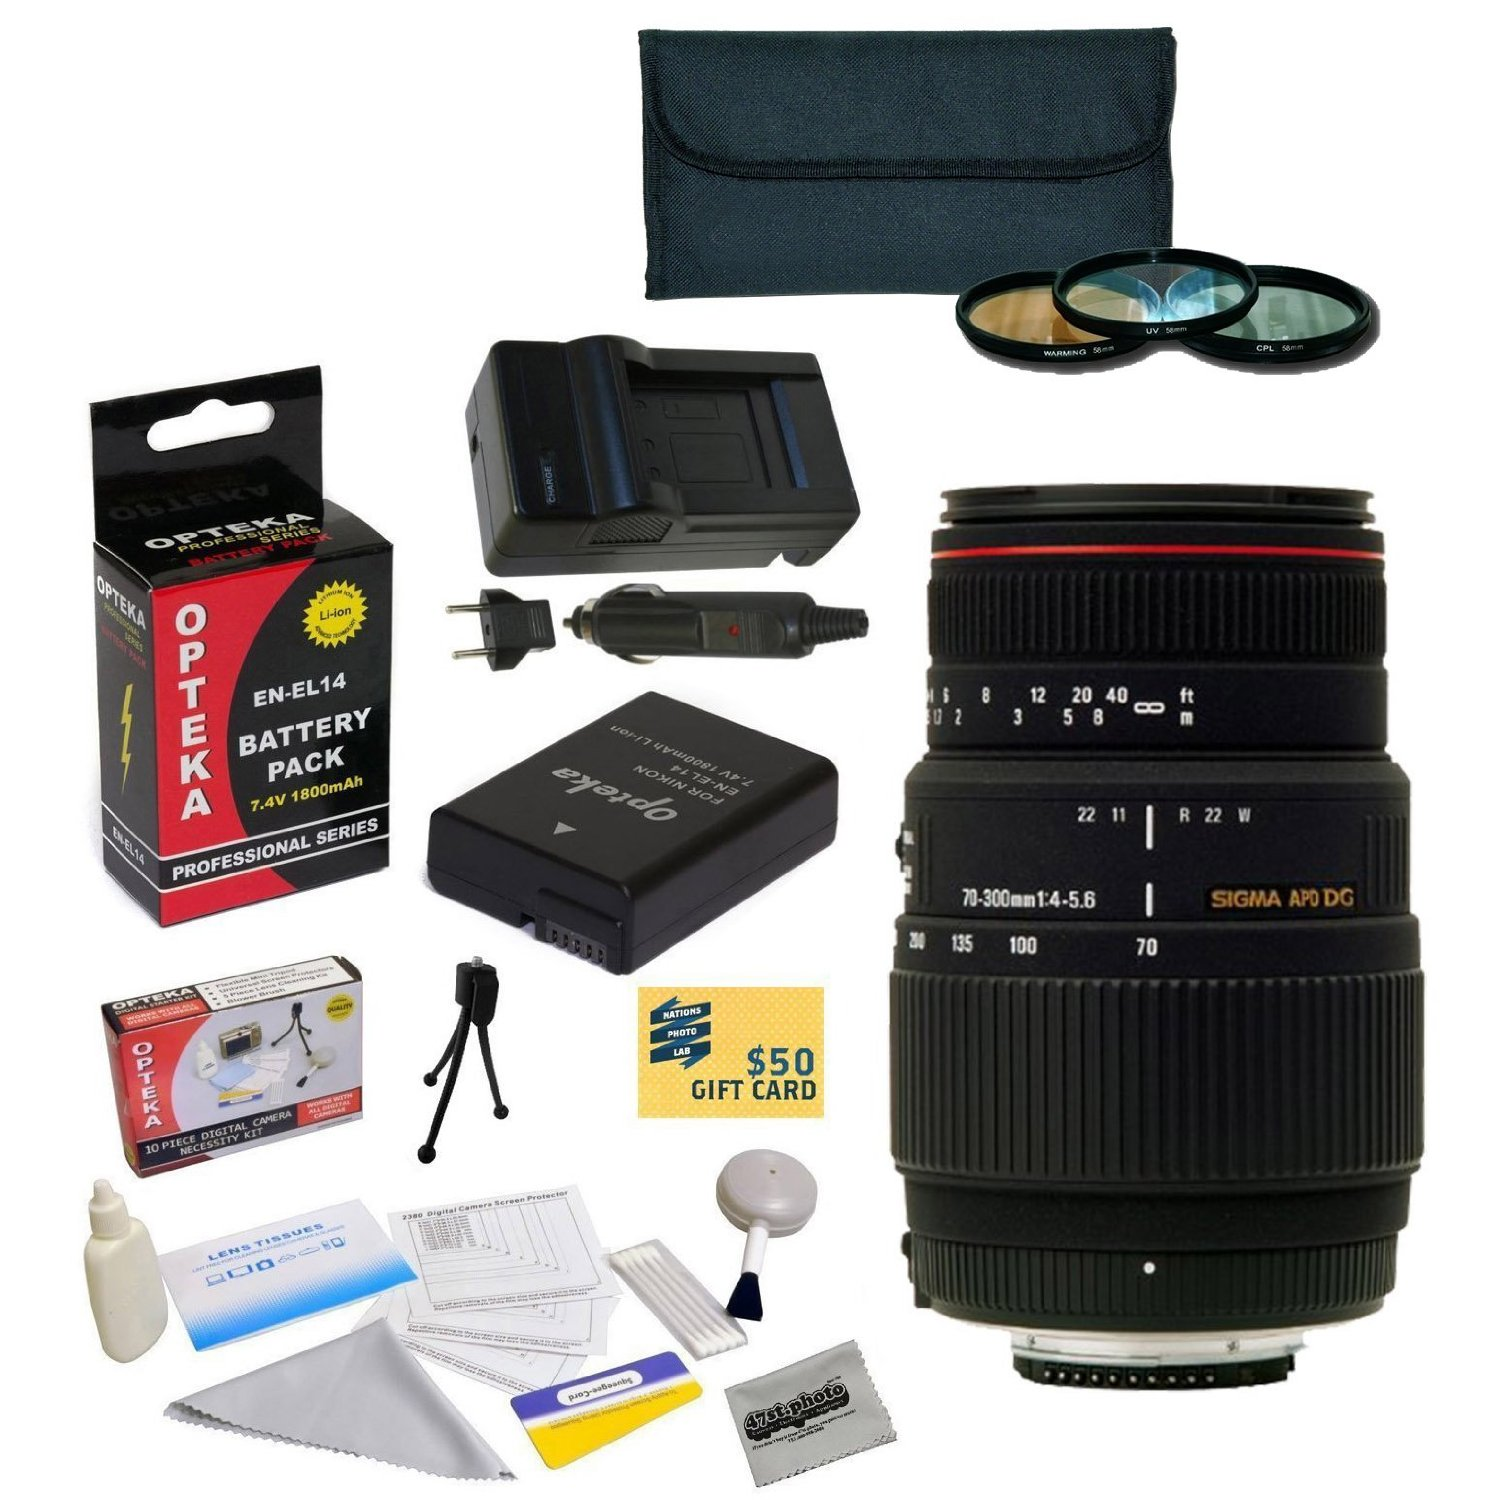 Sigma 70-300mm f/4-5.6 DG Macro Lens Kit for Nikon D3100,...